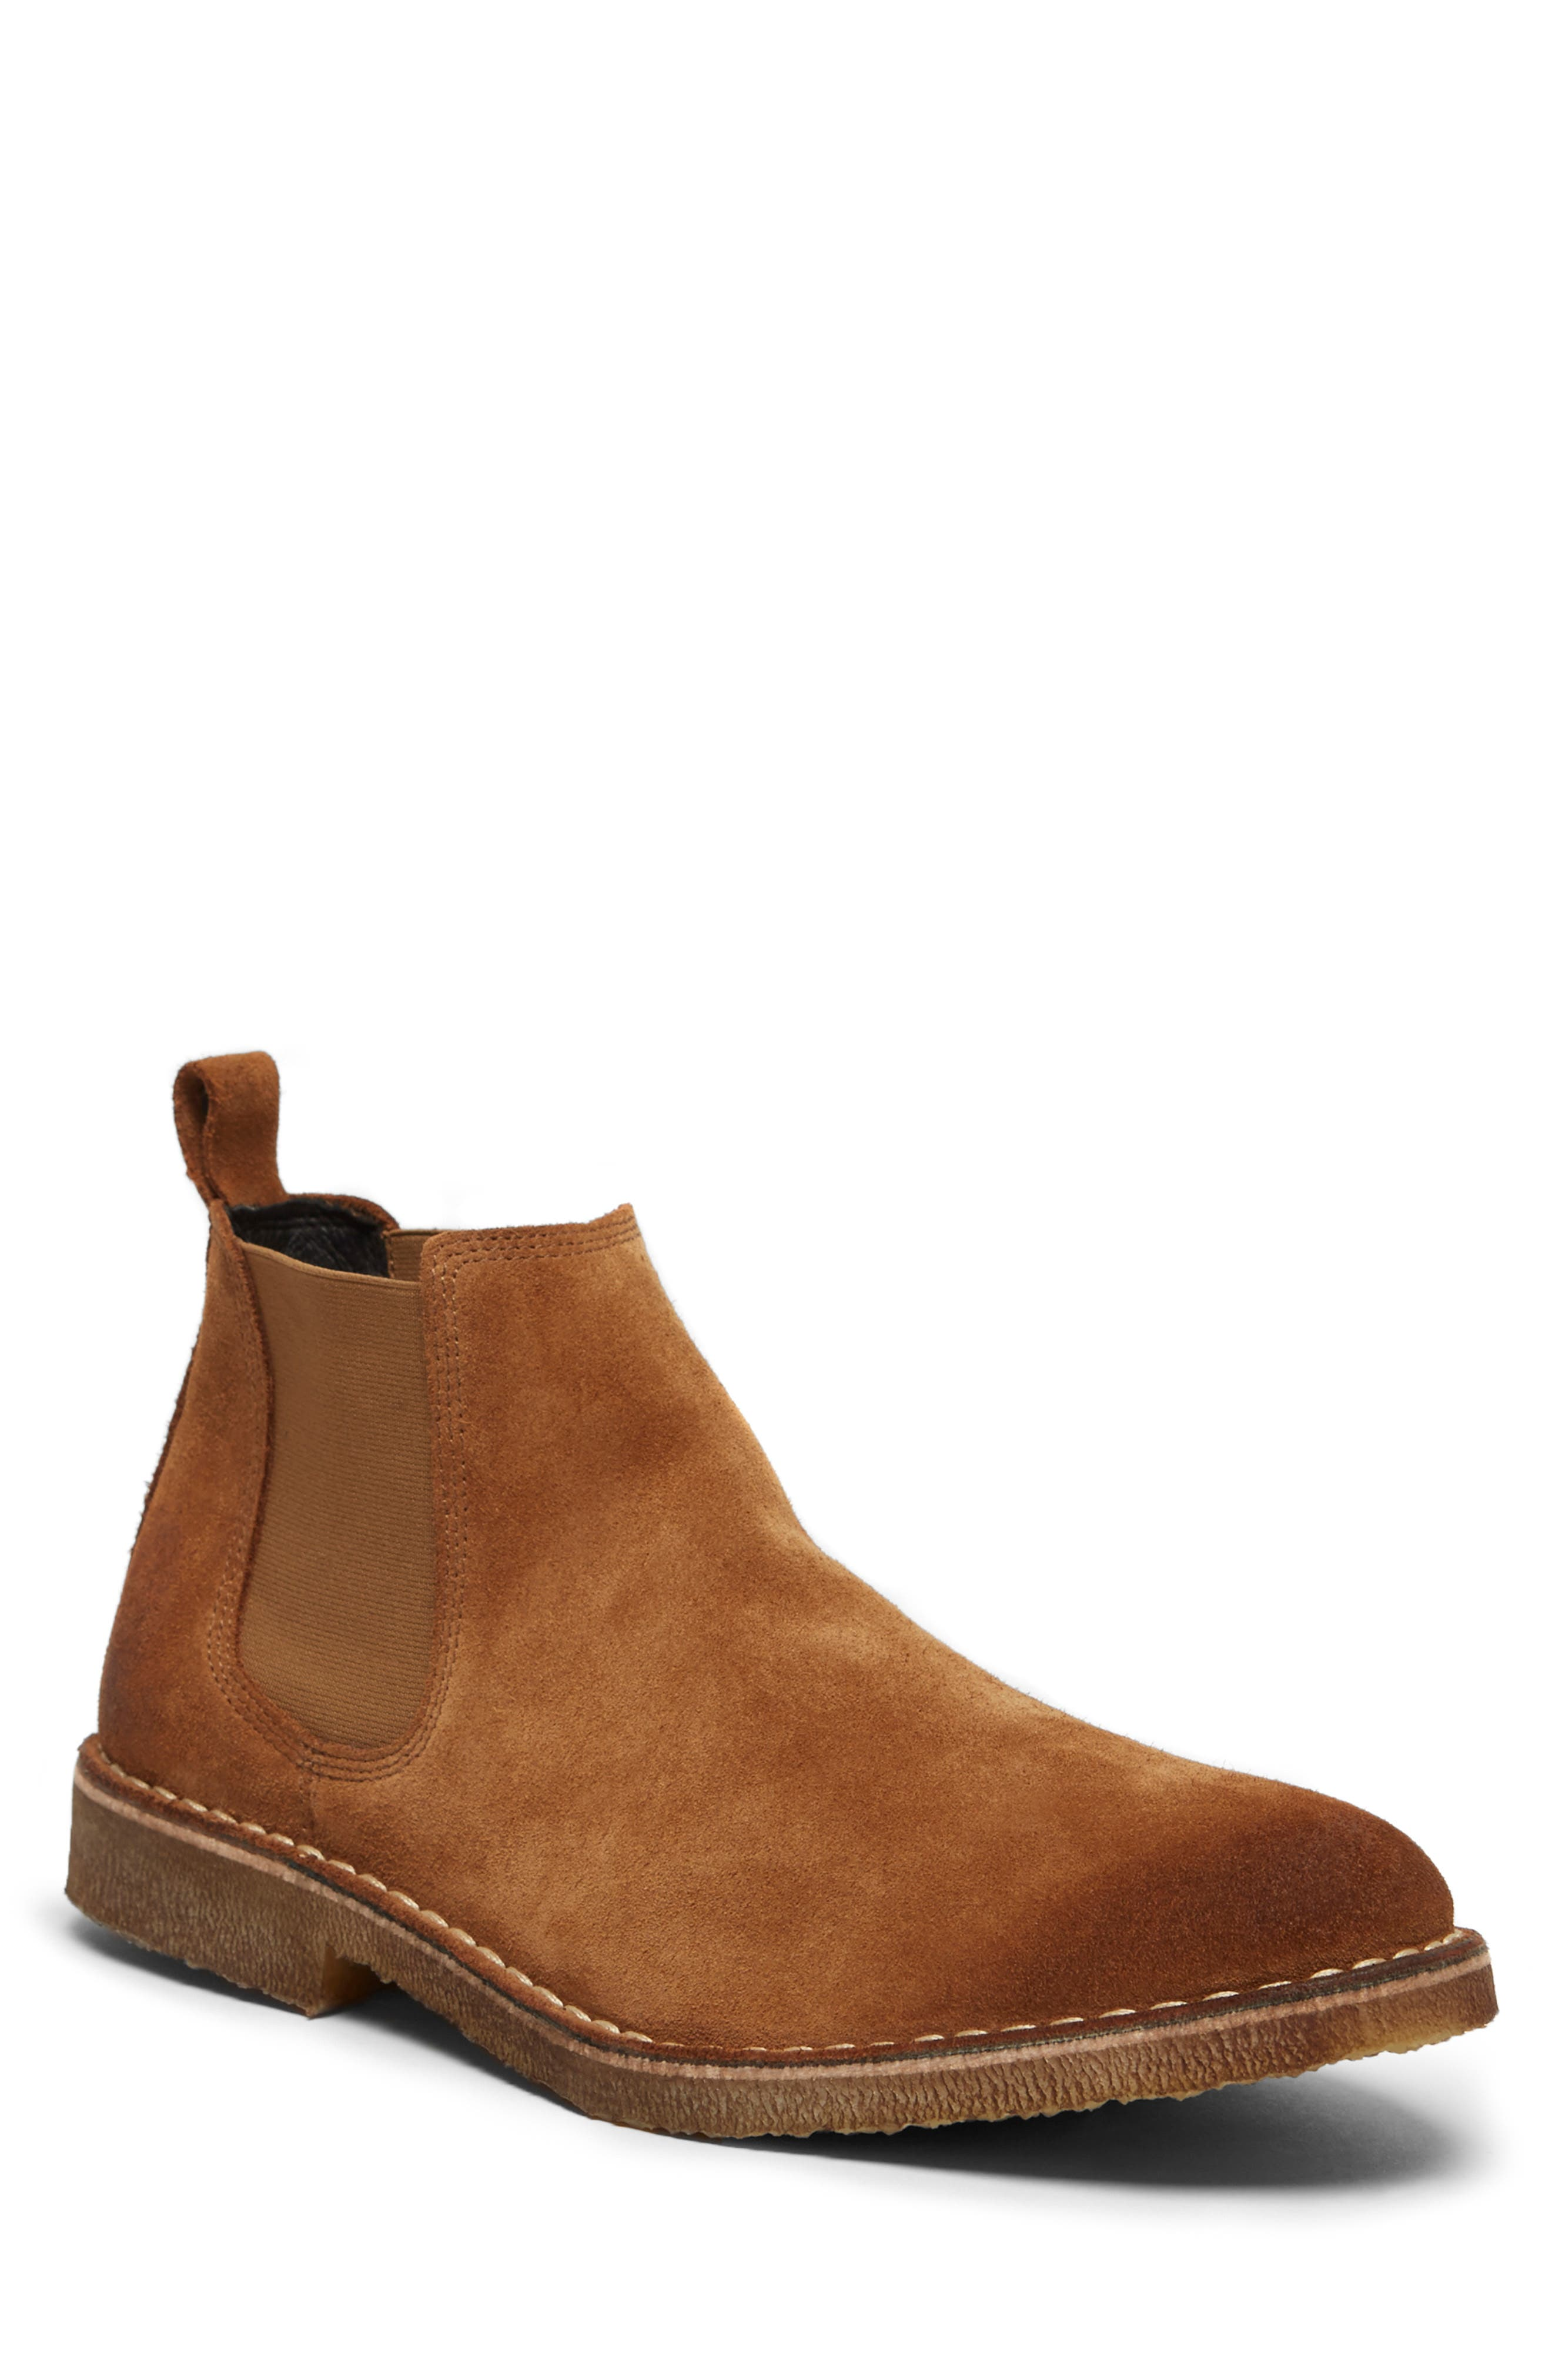 Kenneth Cole New York Hewitt Chelsea Boot- Brown